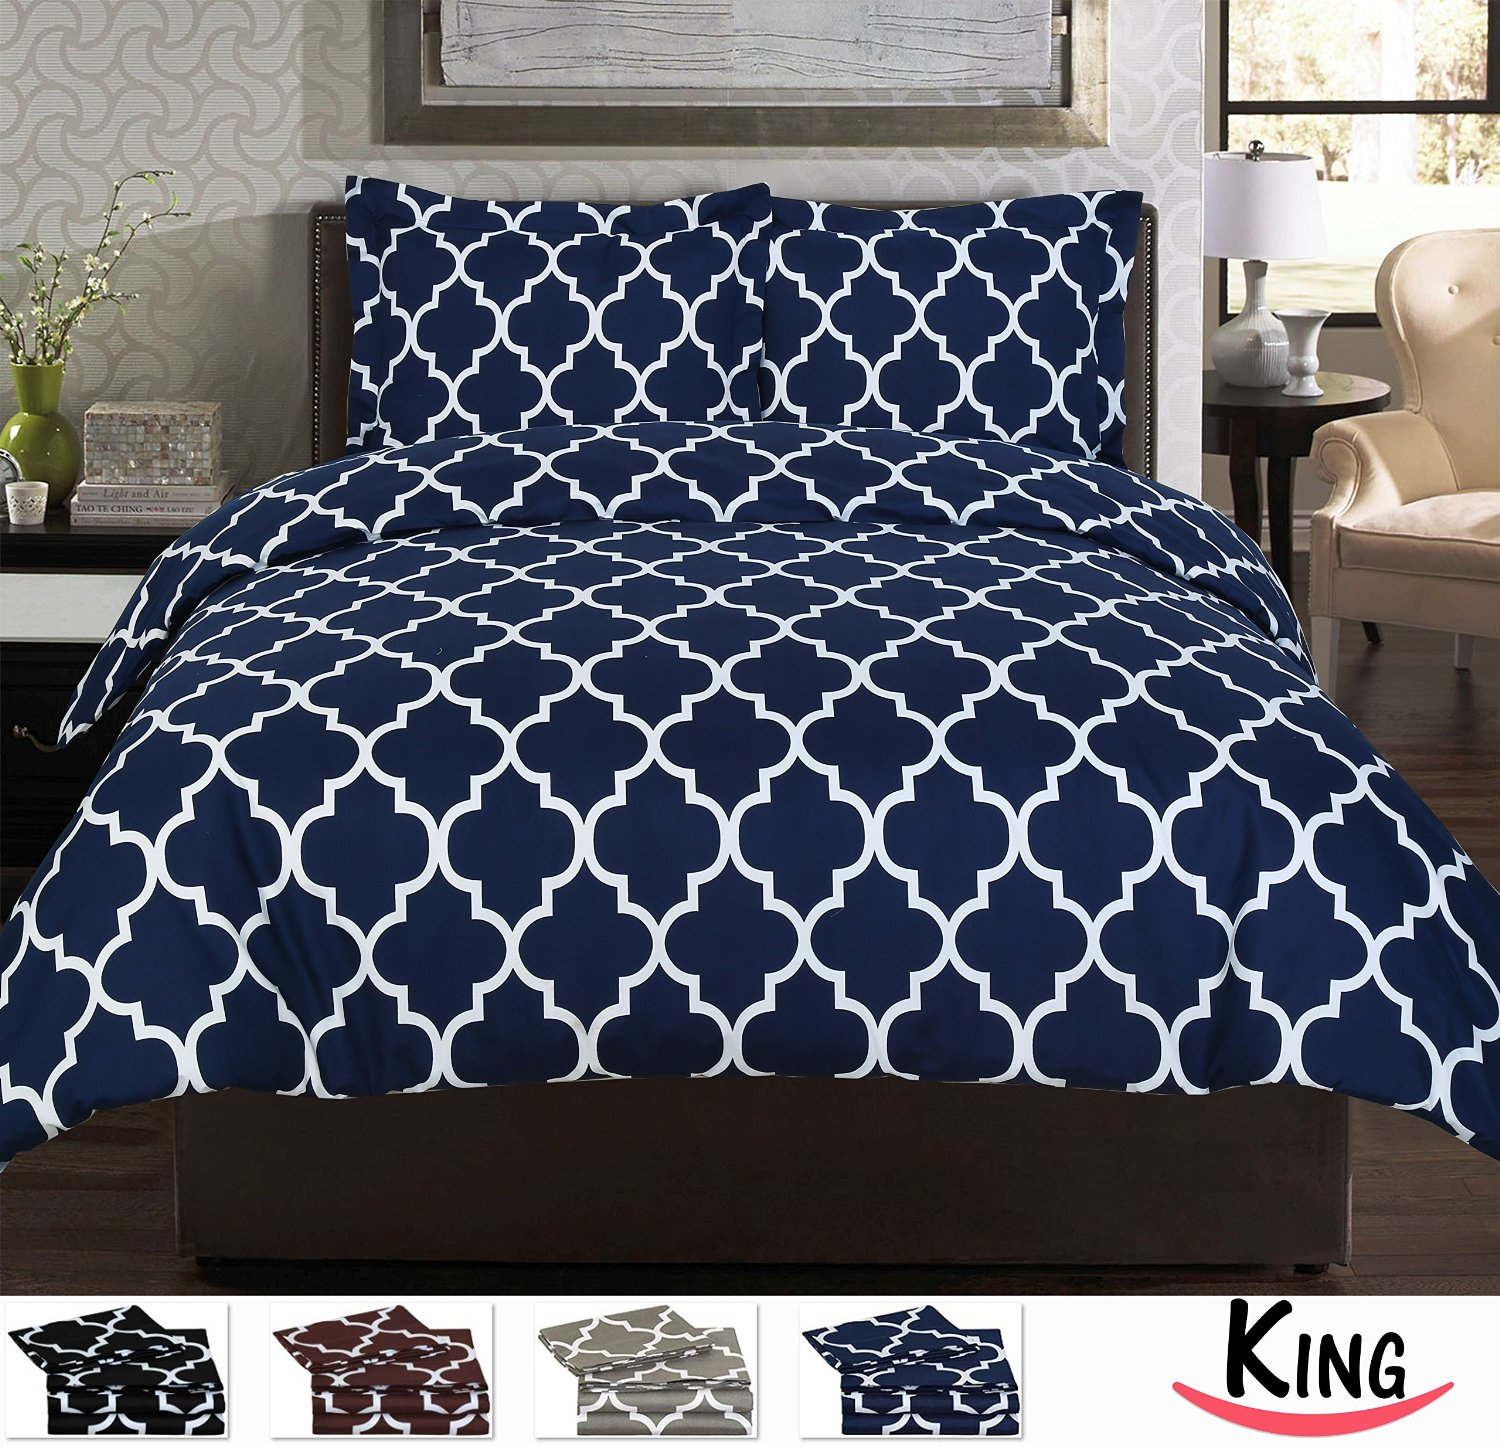 King Printed Duvet-Cover Set